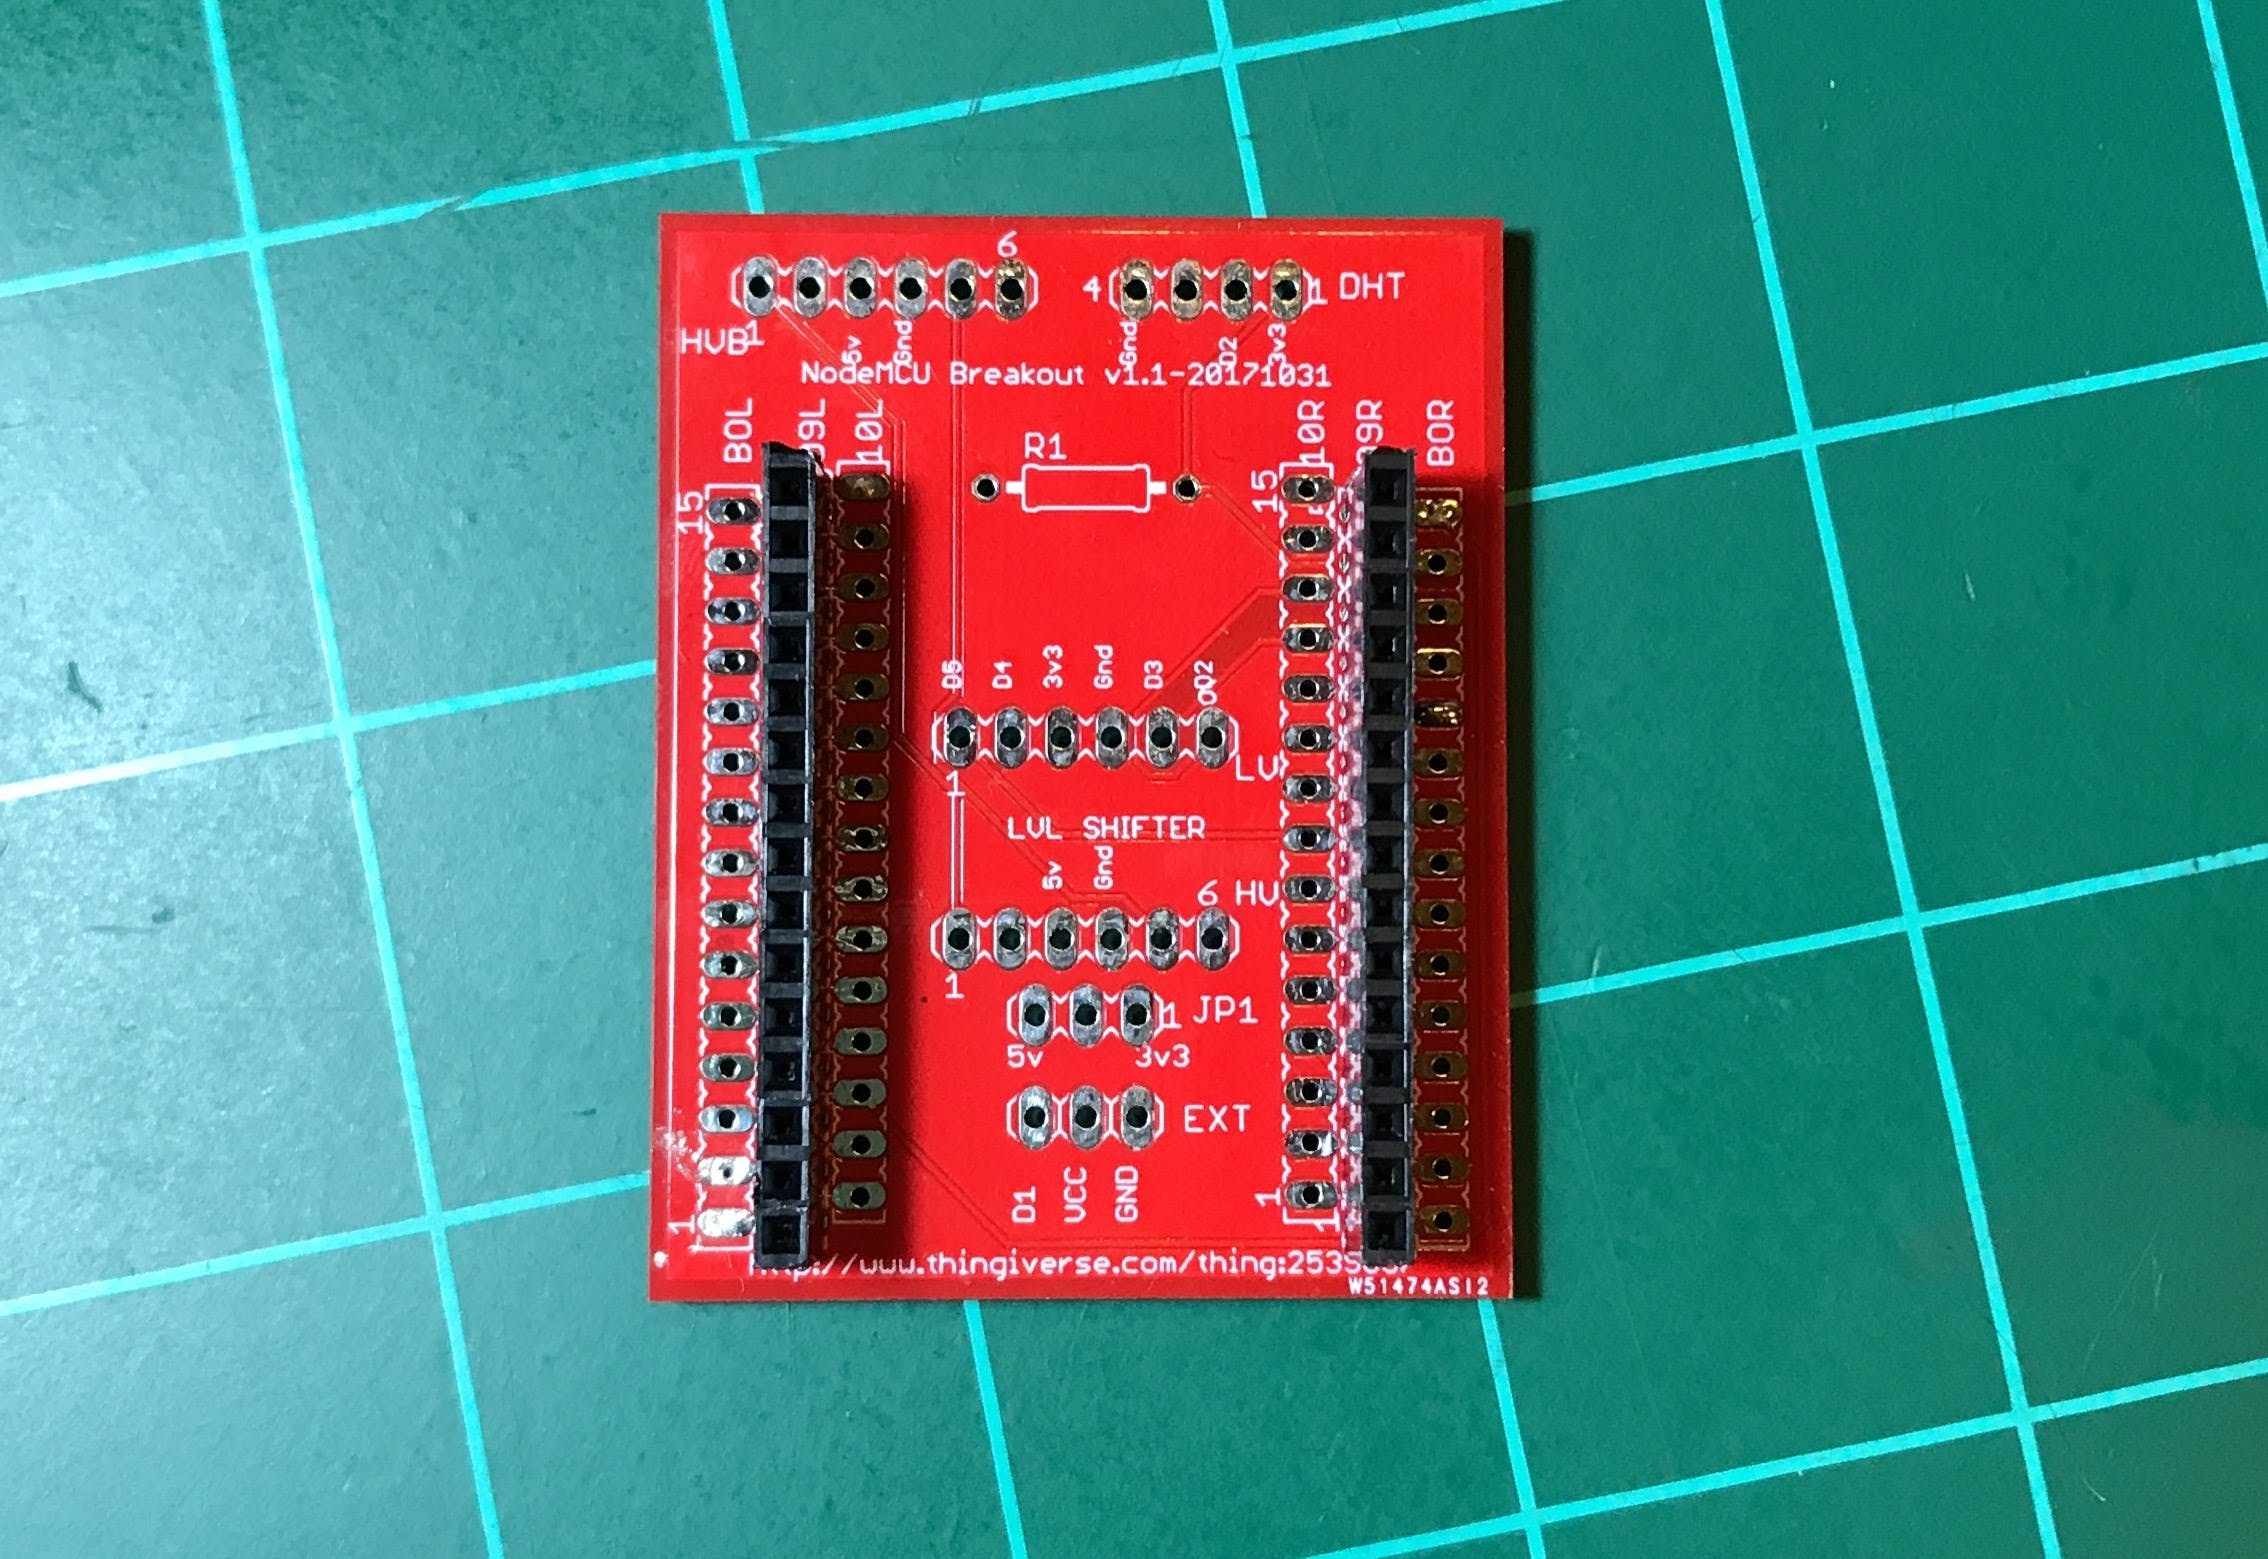 Figure 4: Final version of the PCB